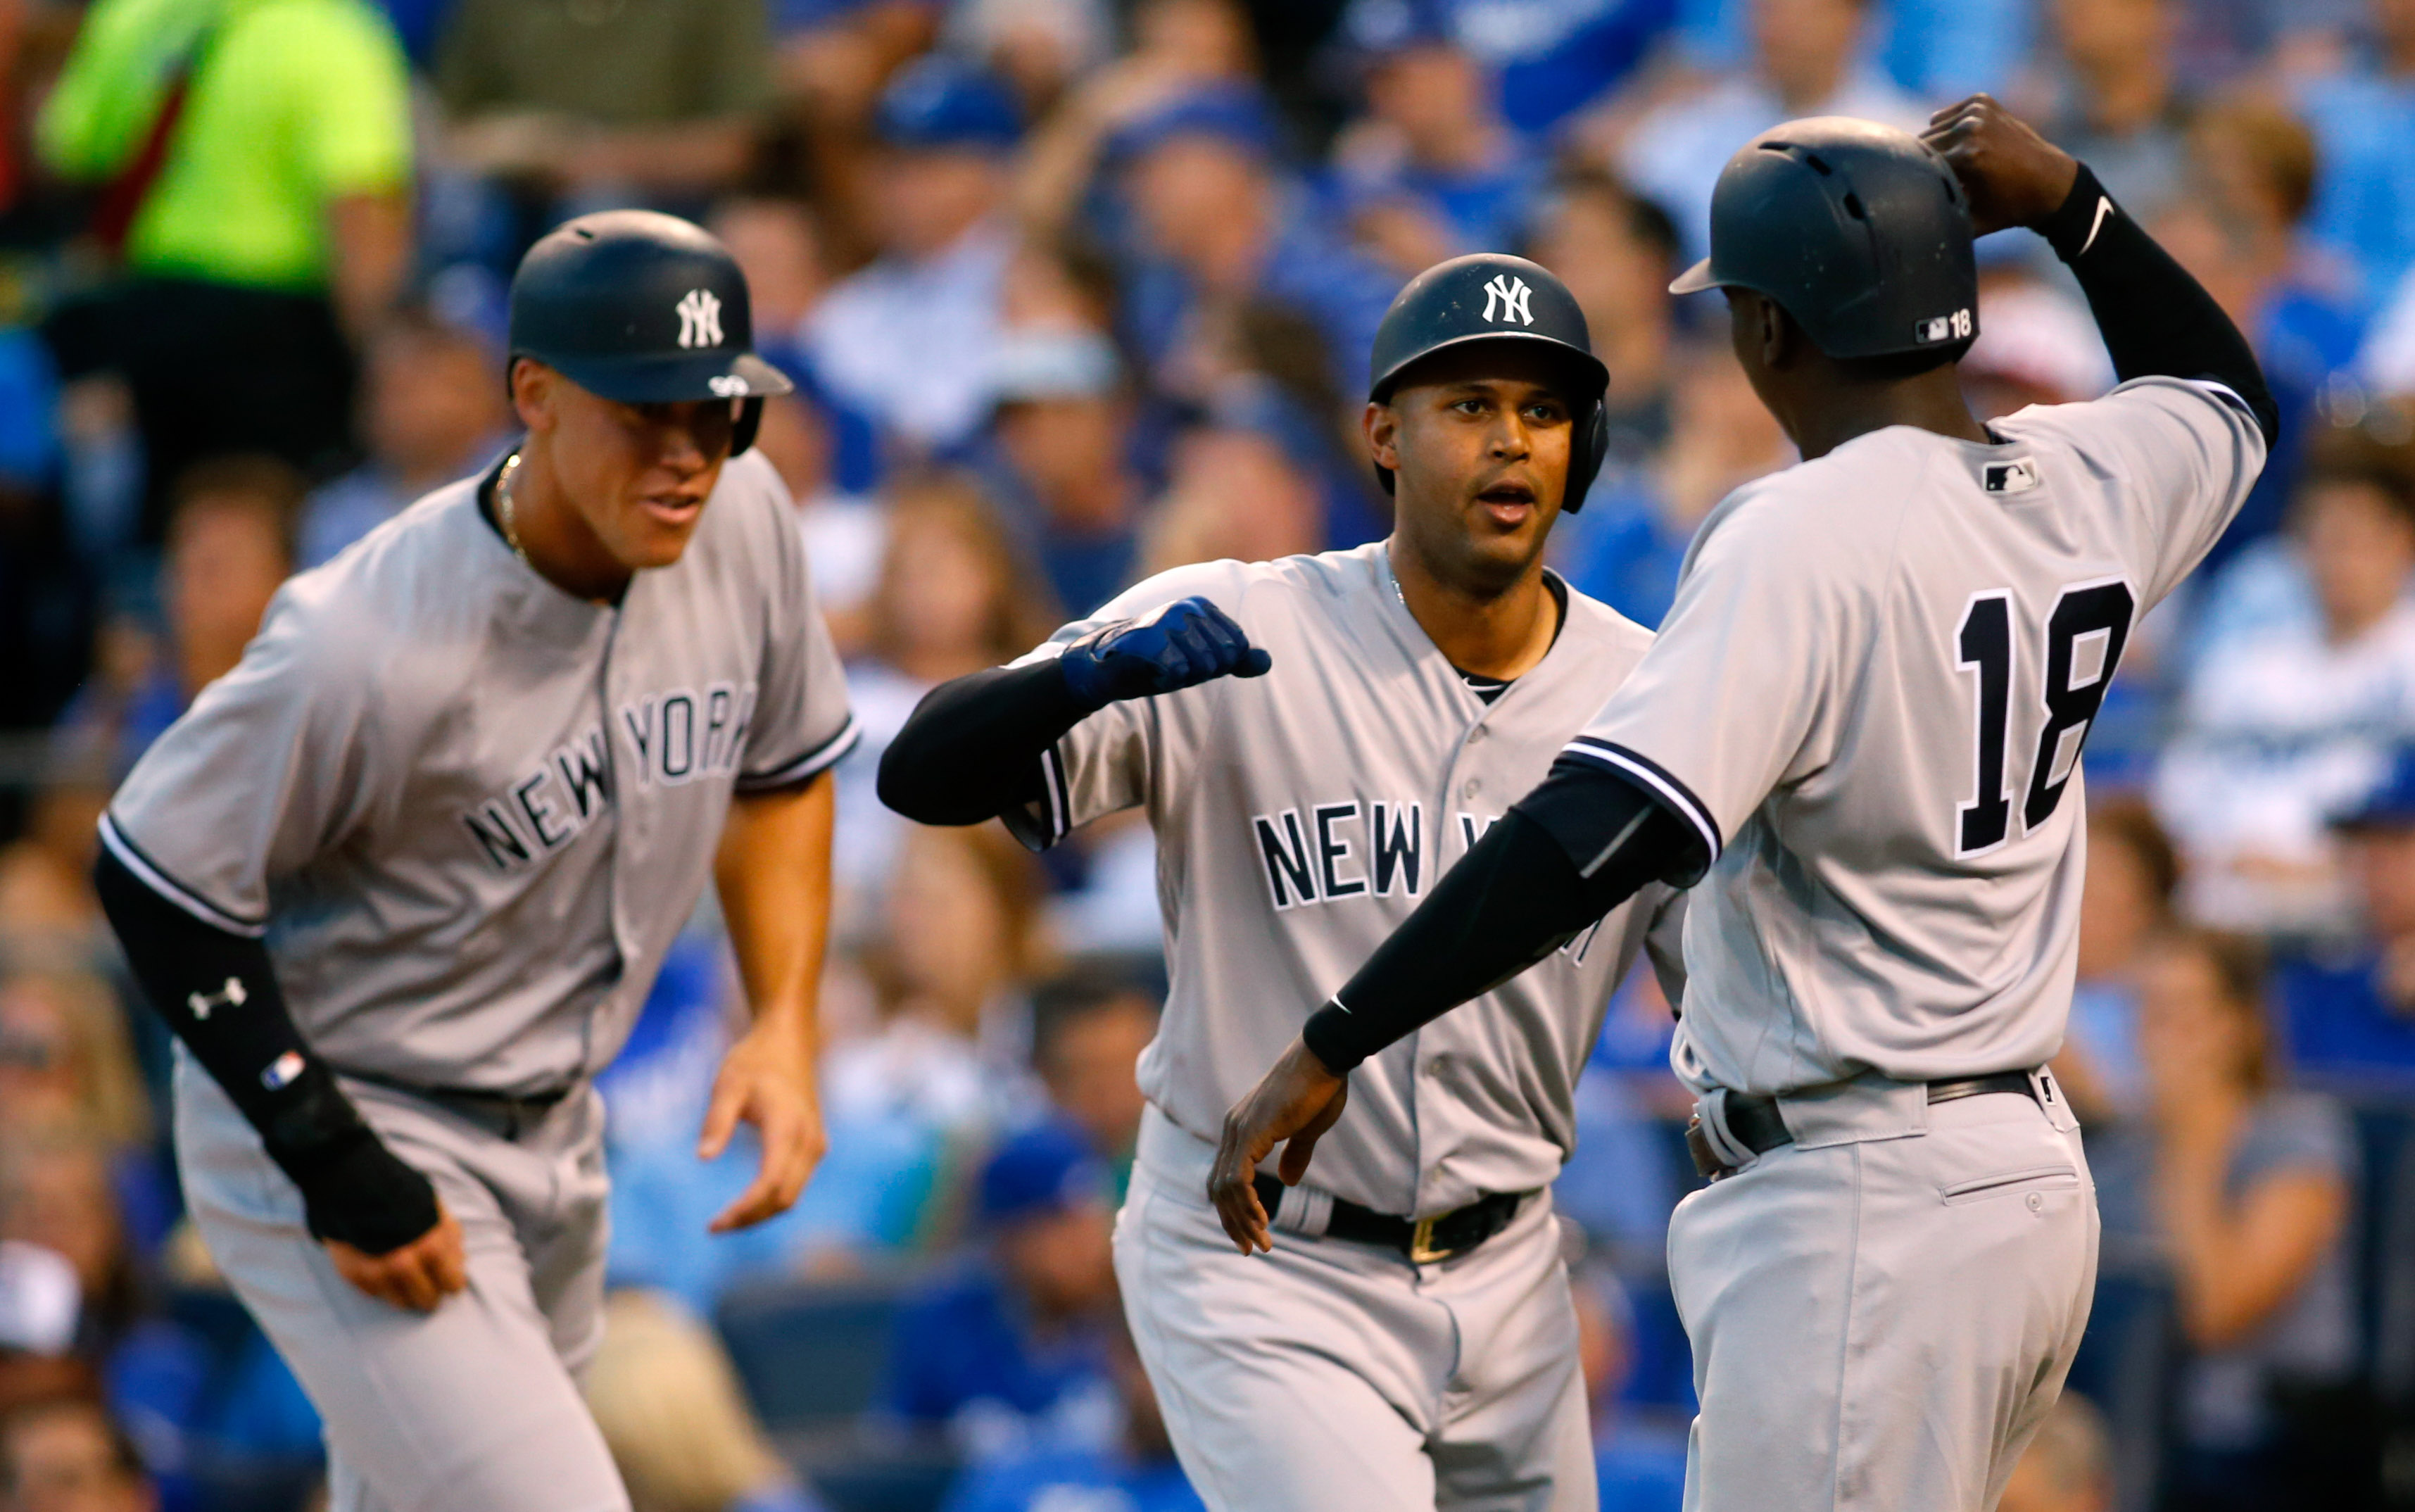 Yankees finally end skid, but issues aren't resolved